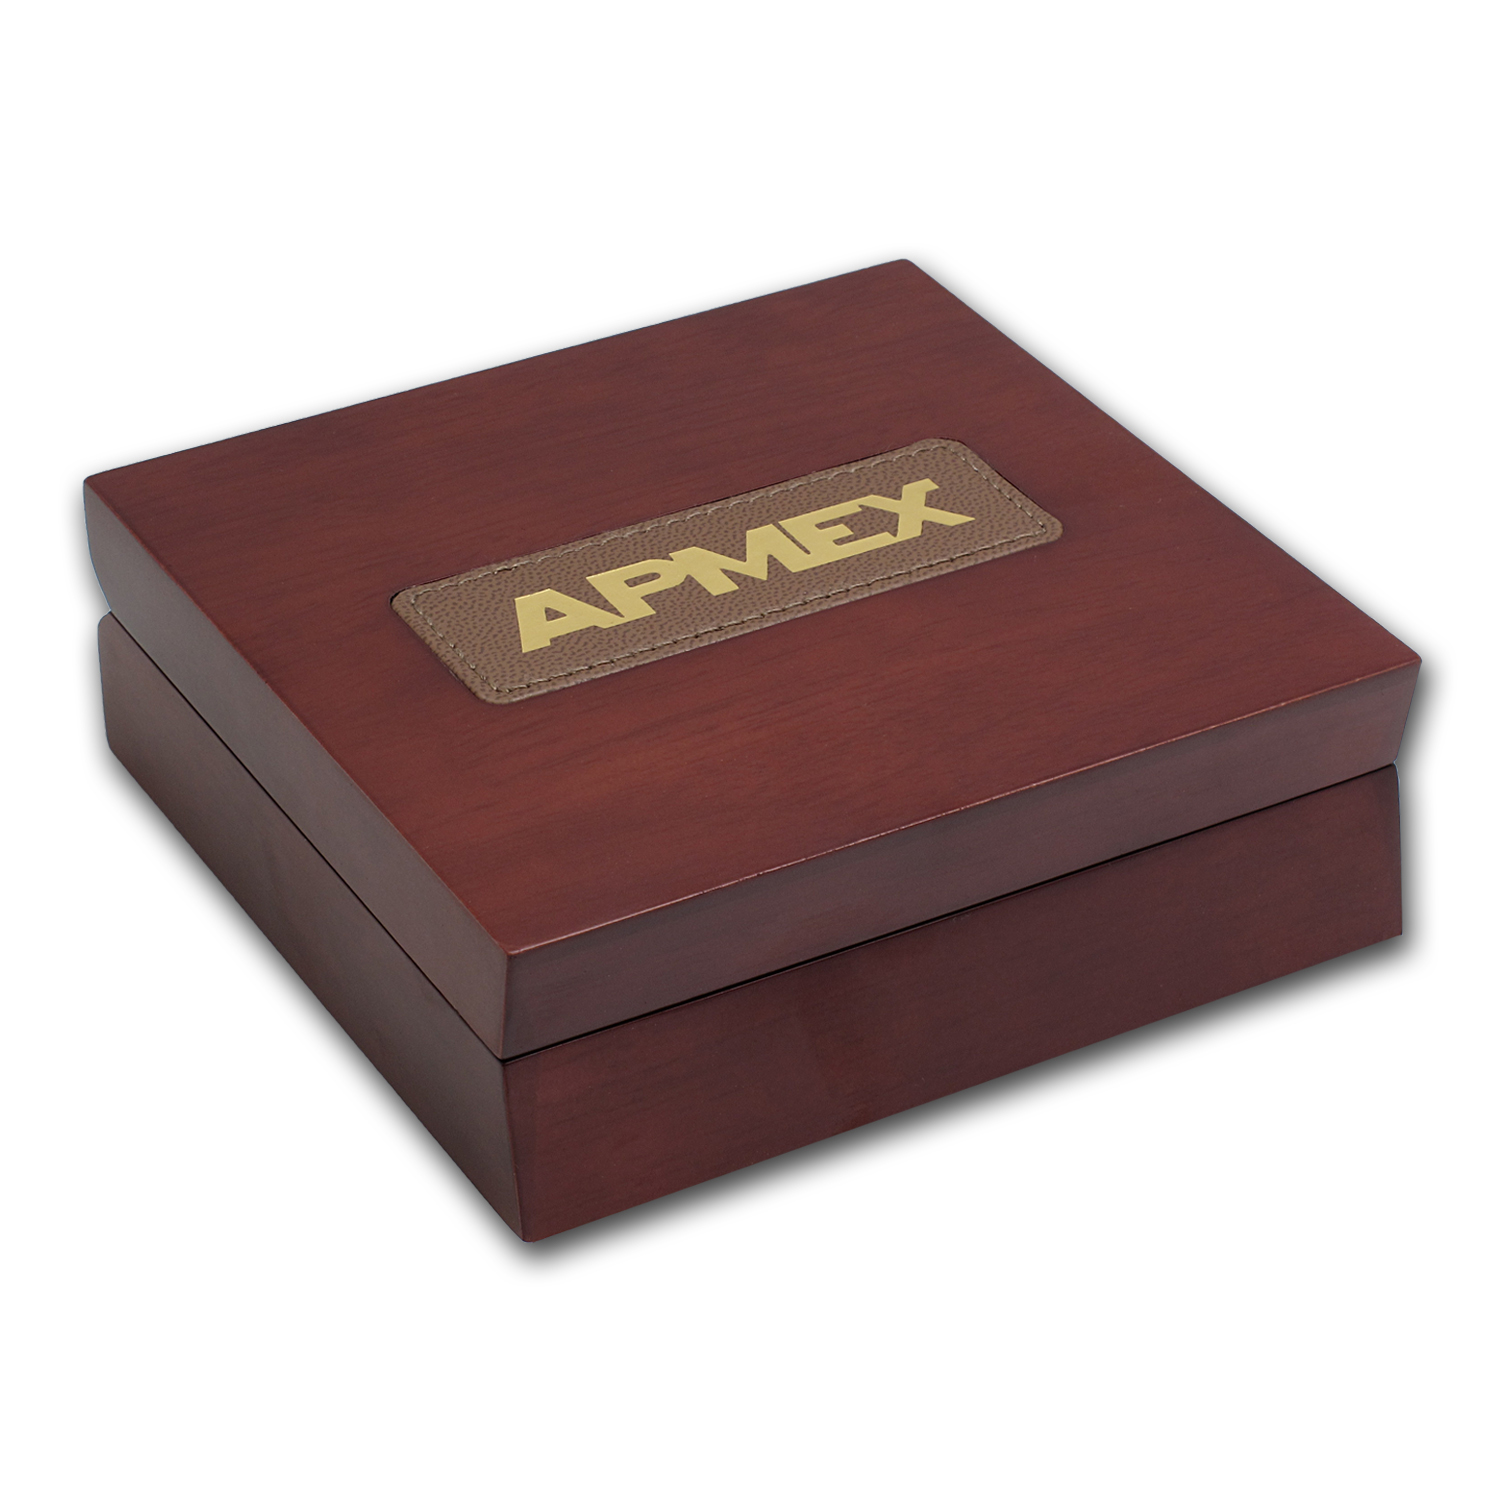 APMEX Wood Gift Box - 5 oz US Mint ATB Silver Coin w/Air-Tite Cap